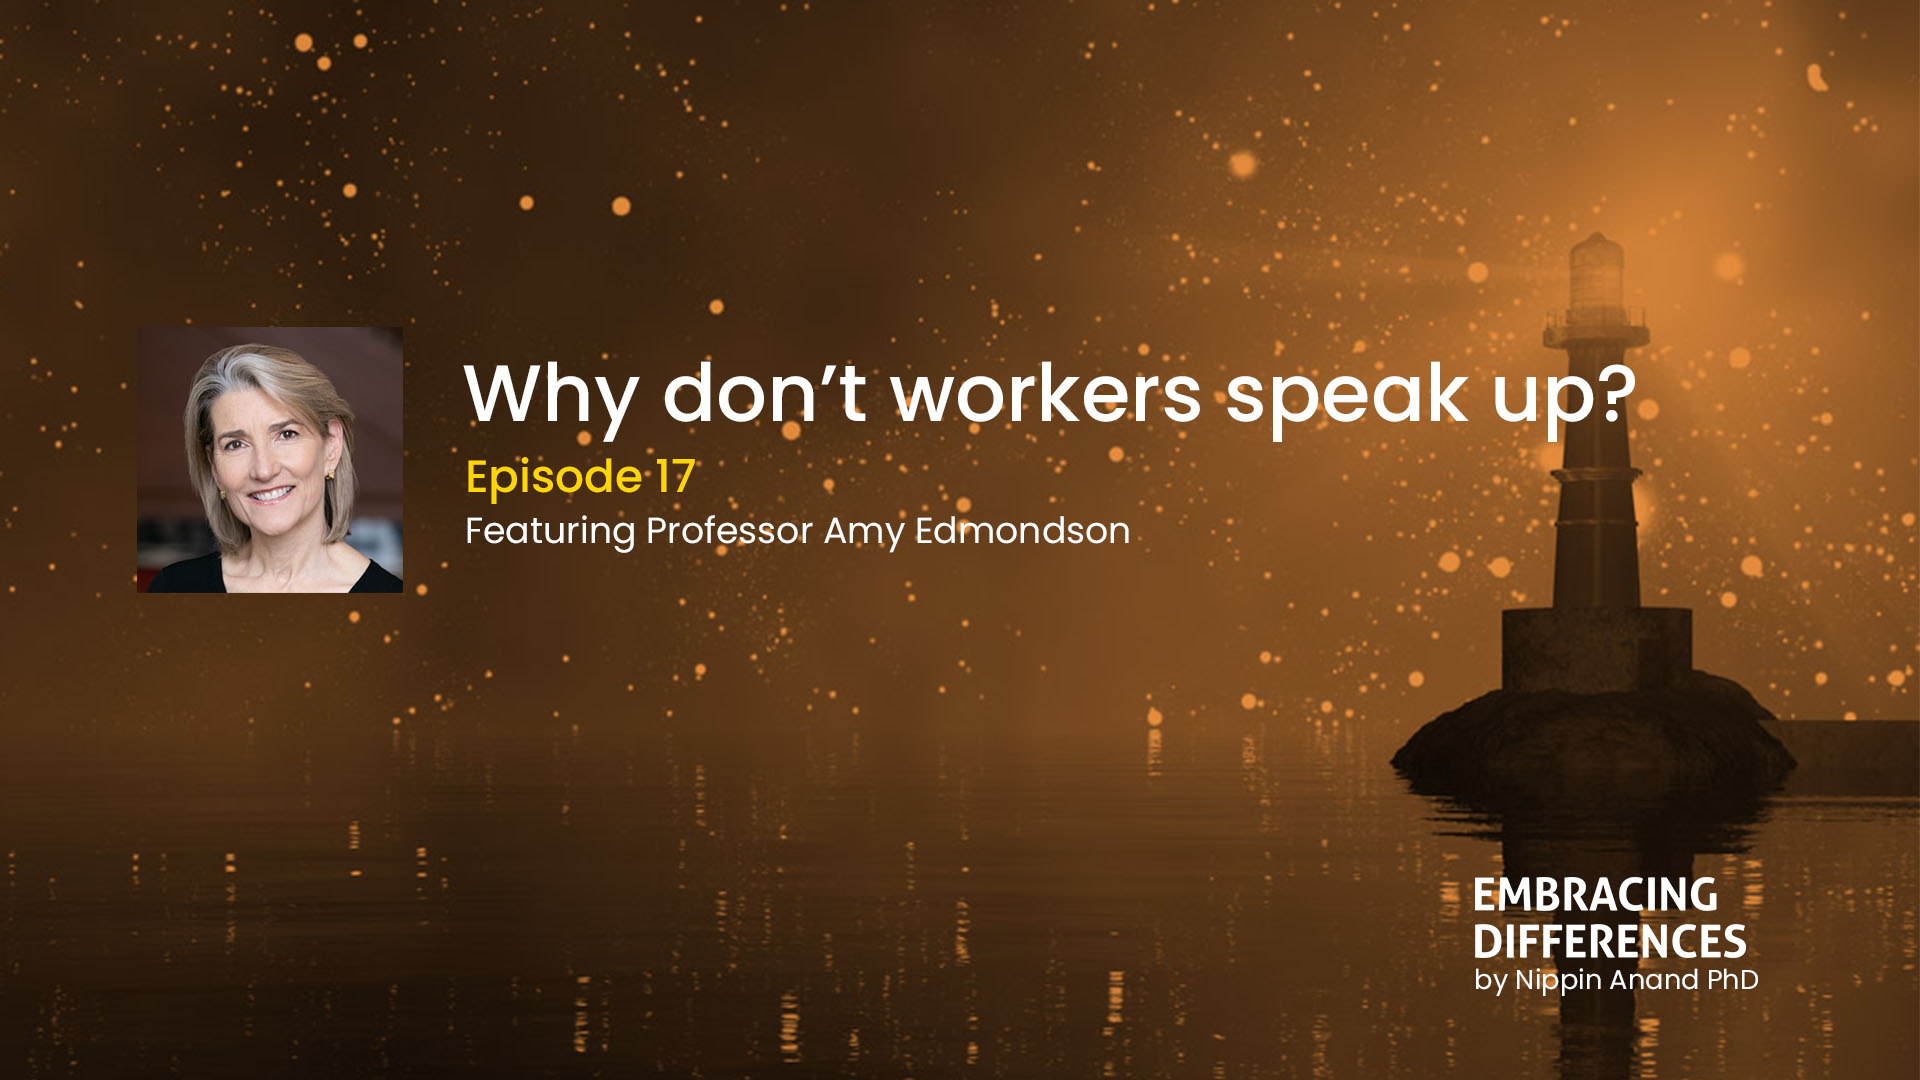 Why don't workers speak up? A conversation with Amy Edmondson